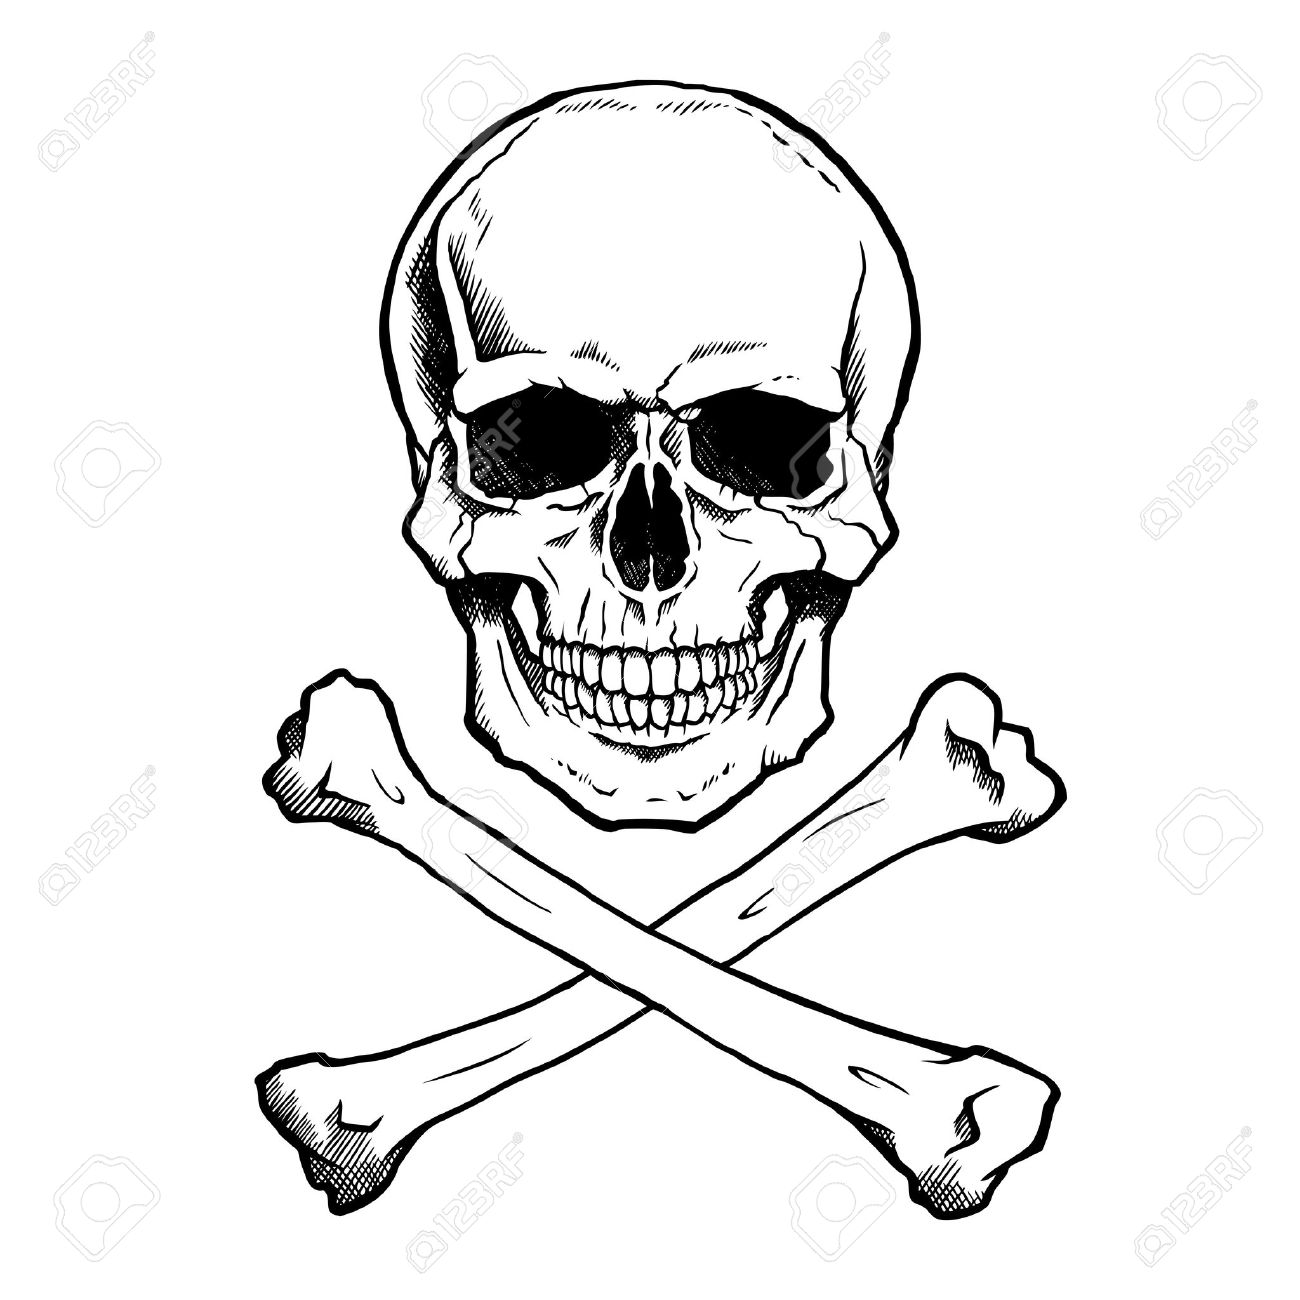 1300x1300 Black And White Human Skull And Crossbones. Royalty Free Cliparts